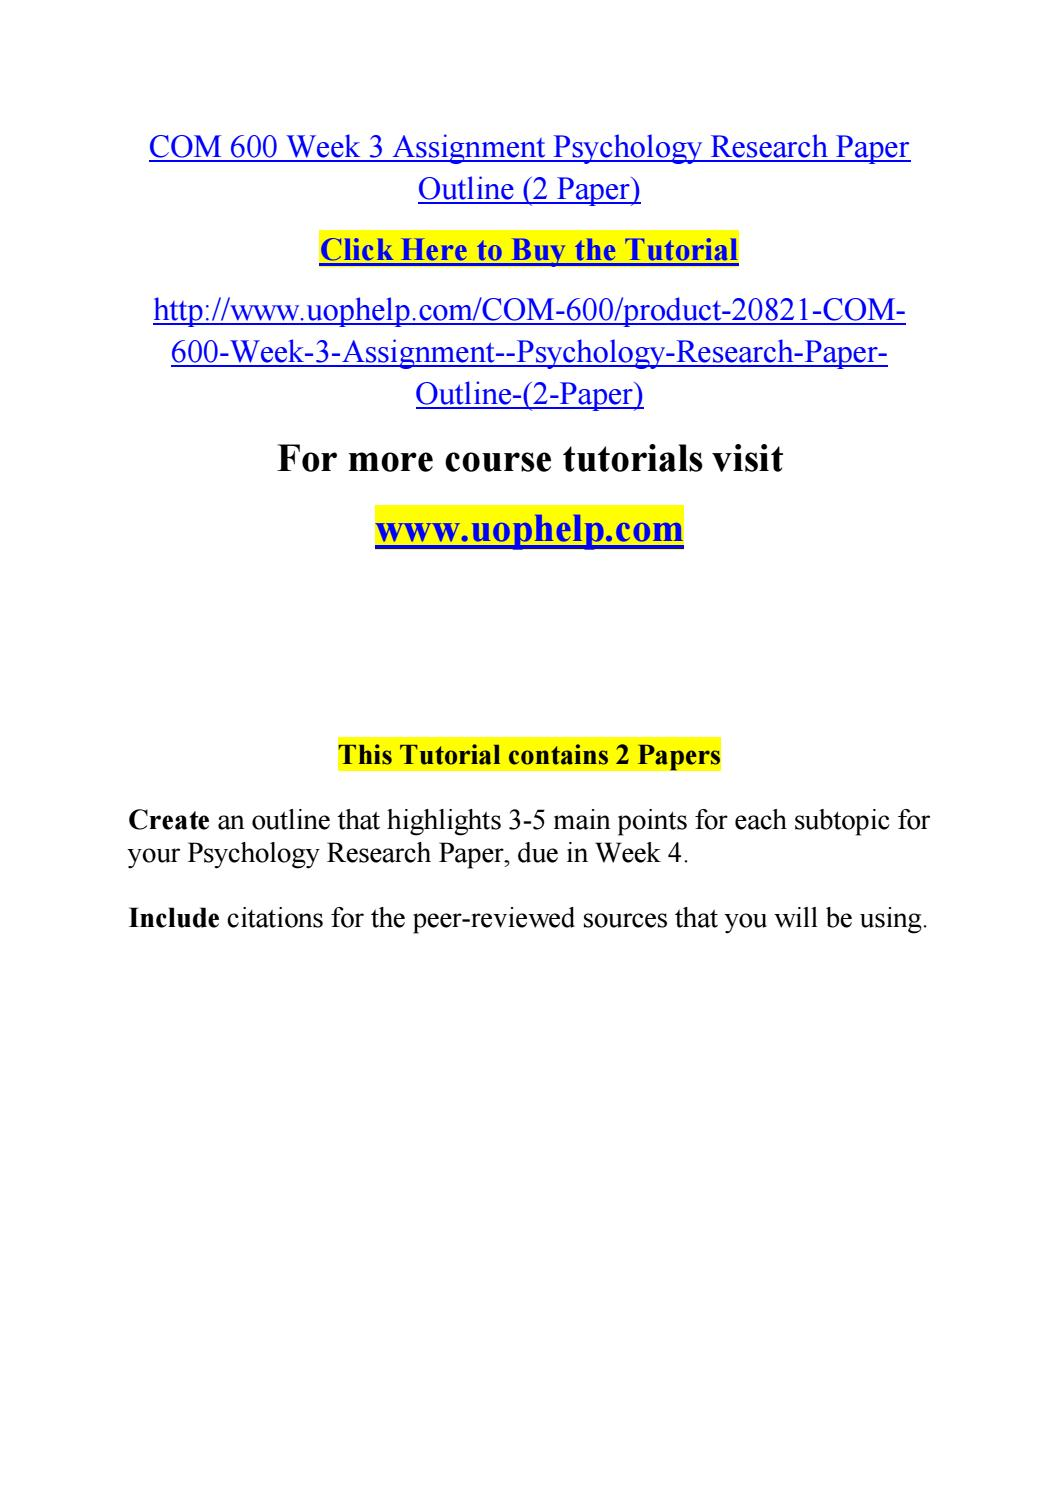 007 Psychology Research Paper Outline Com Page 1 Striking 600 Com/600 Full